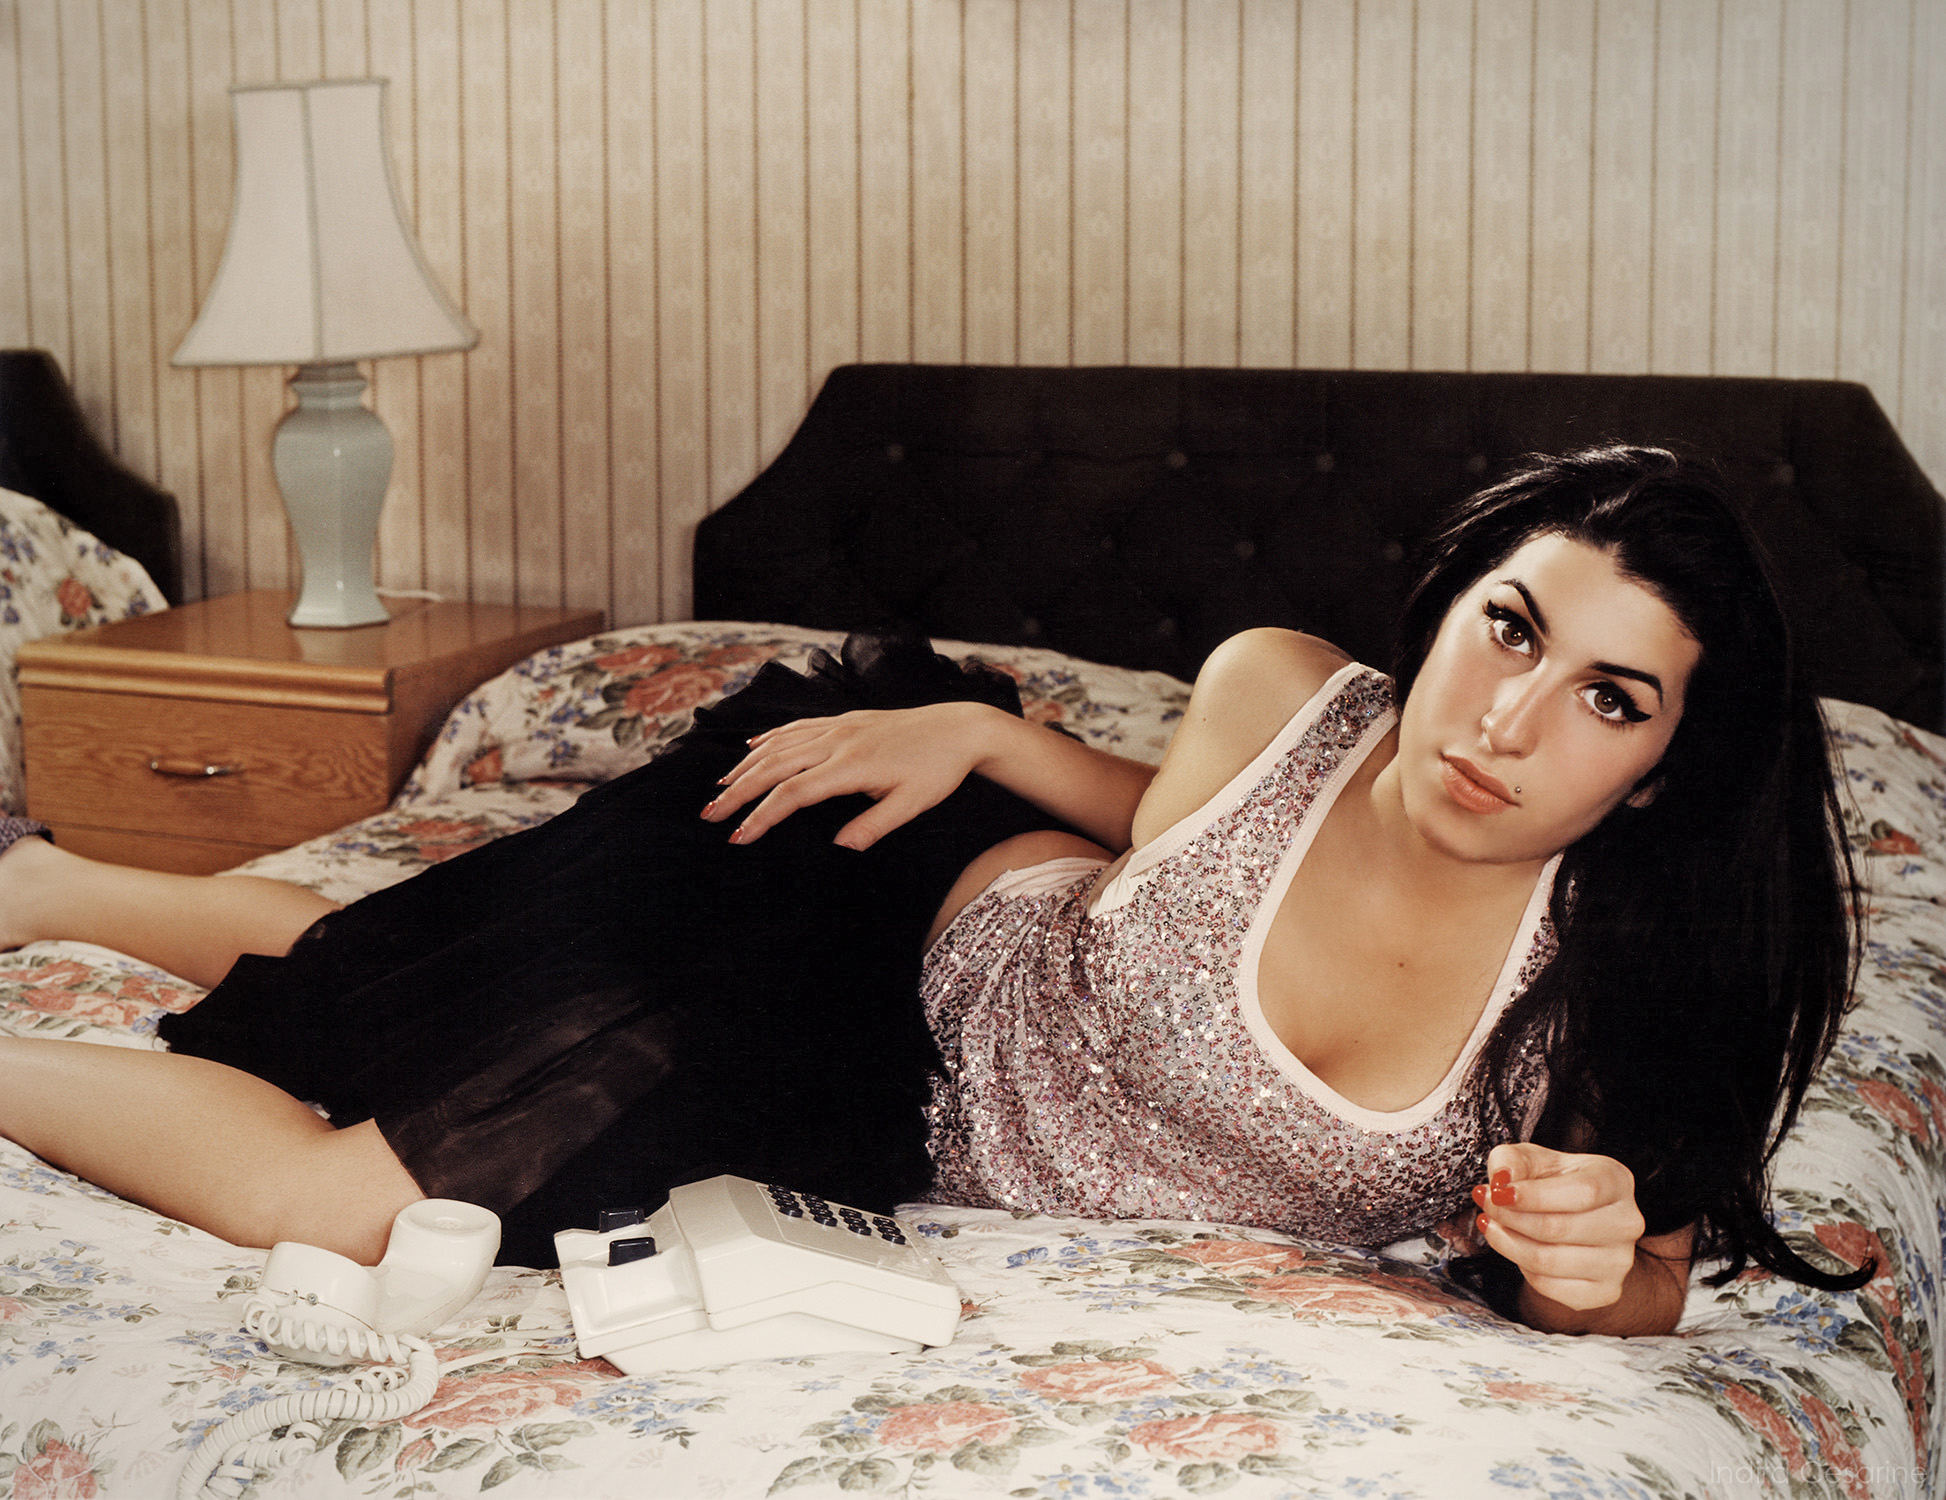 AMY-WINEHOUSE-Photography-by-Indira-Cesarine-001x.jpg